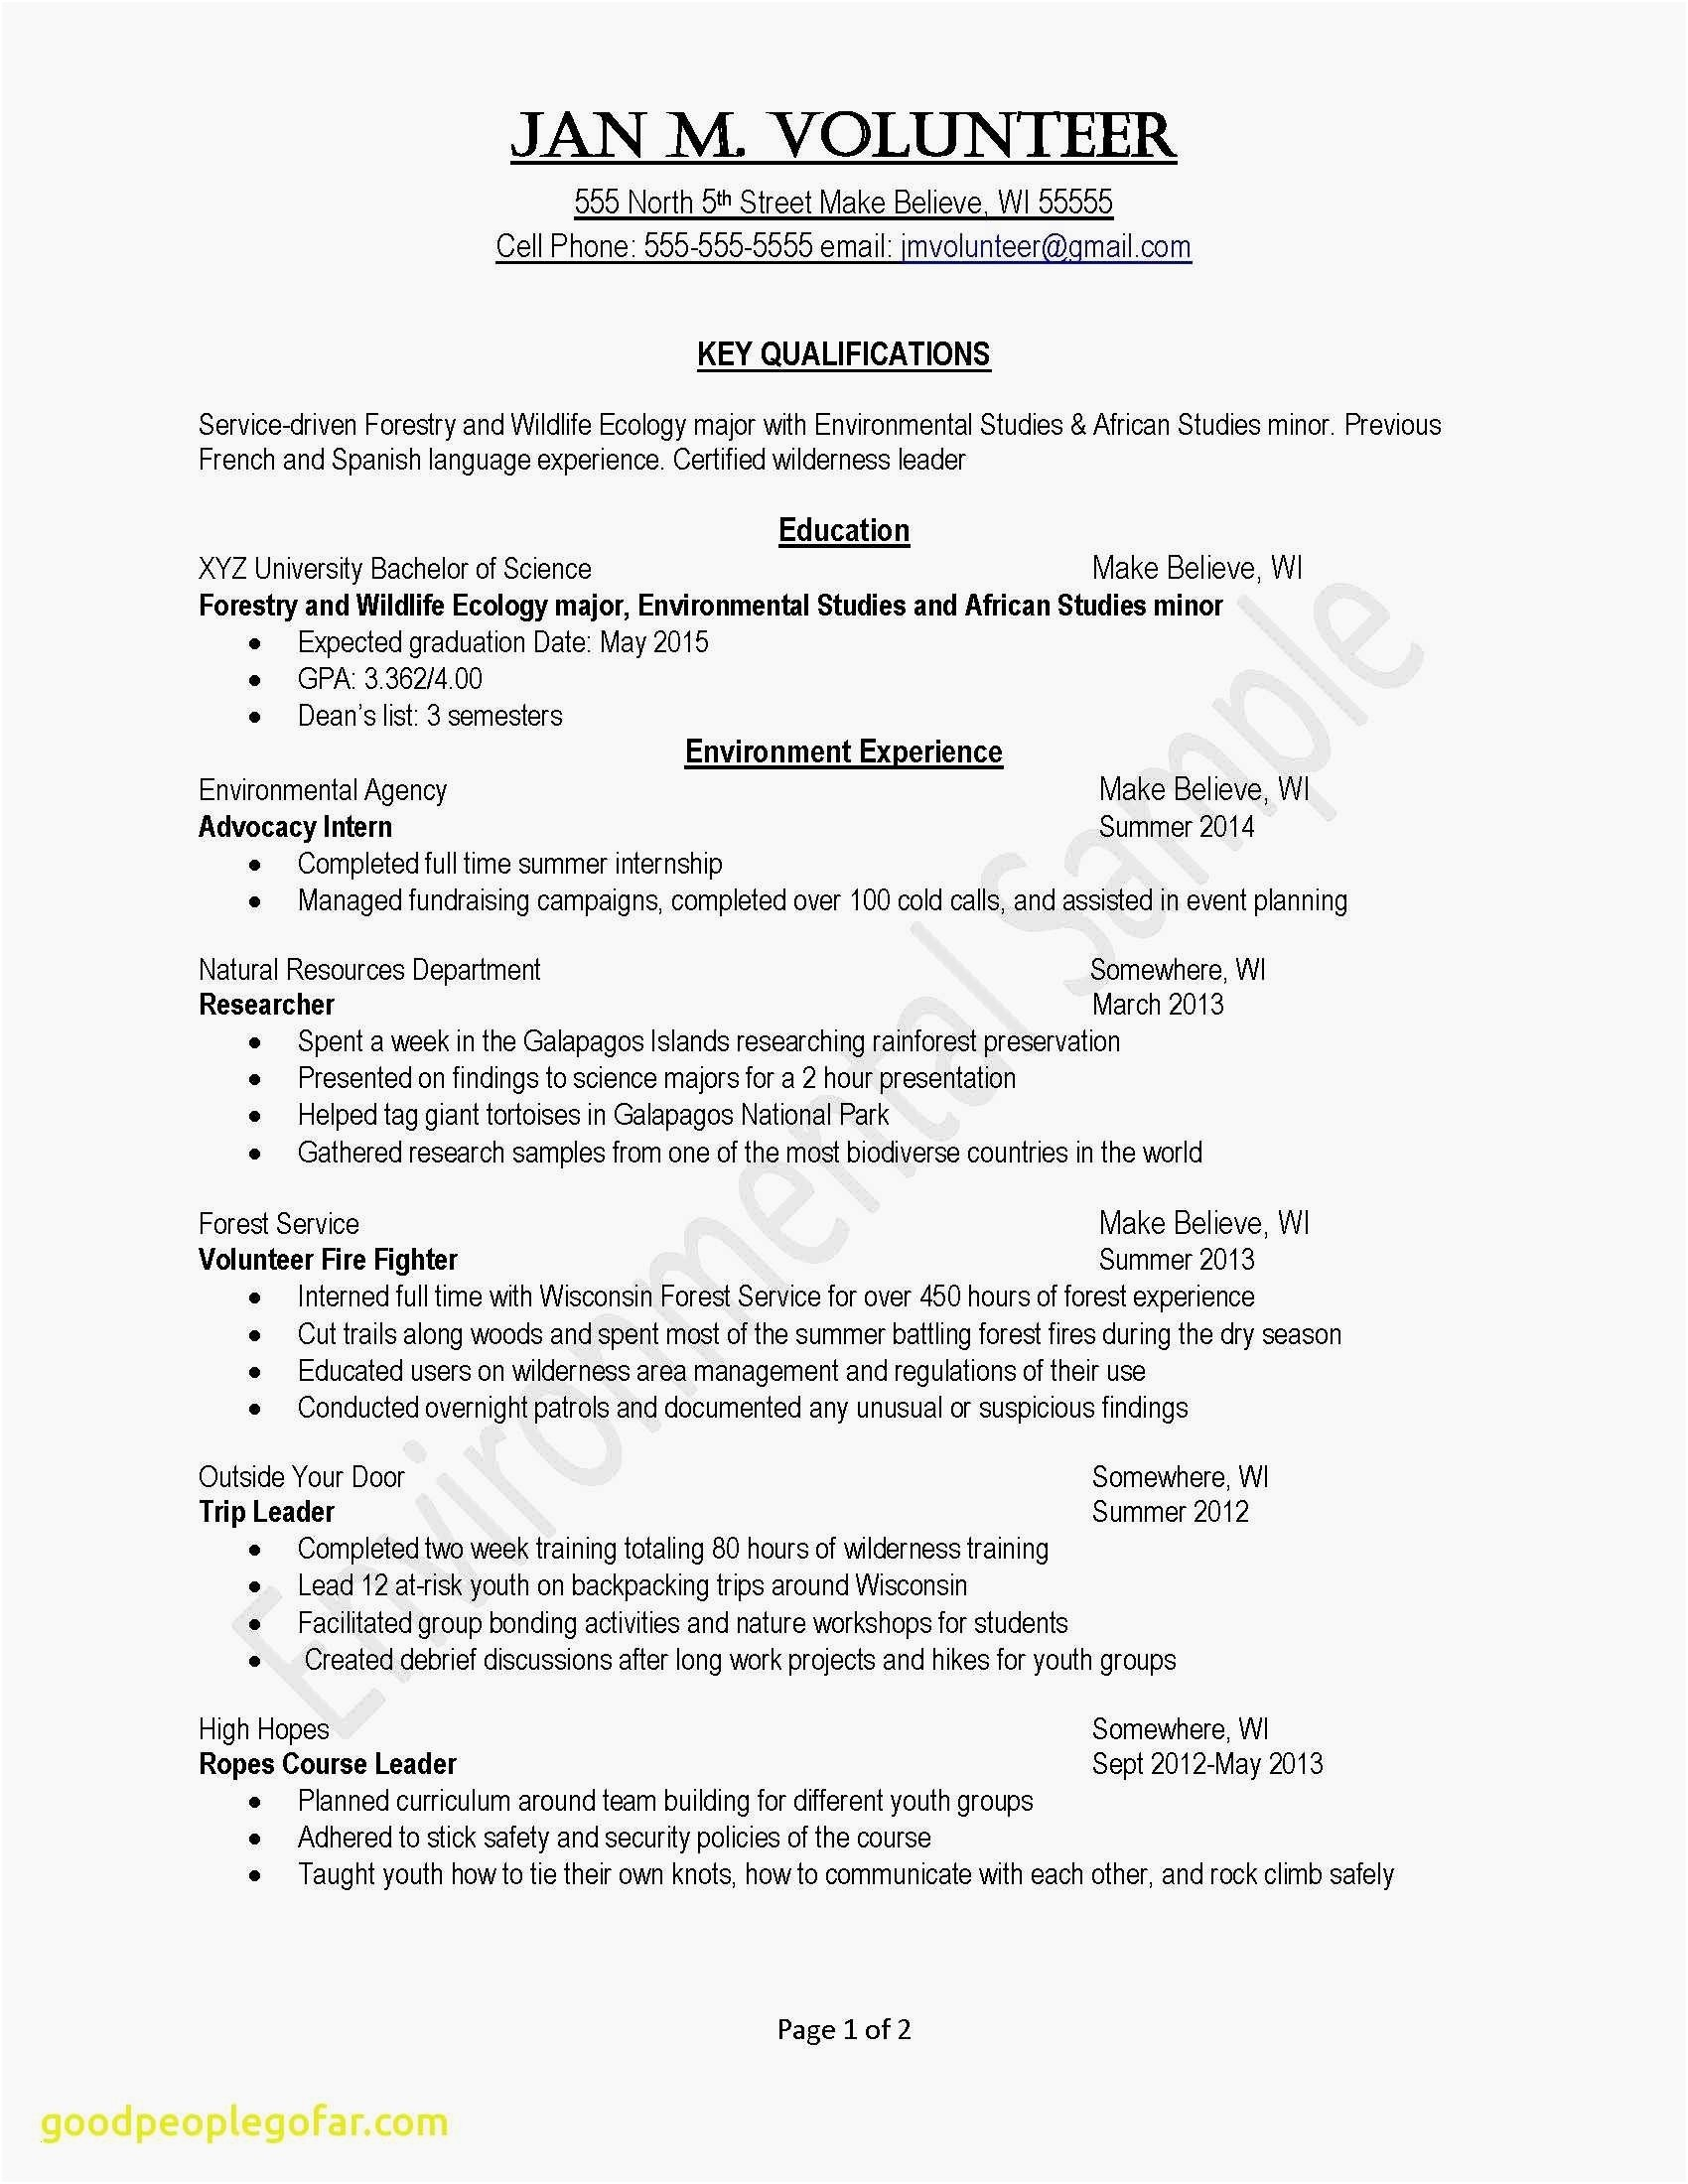 First Time Job Resume - Part Time Jobs Resume Example Inspirational Luxury Examples Resumes